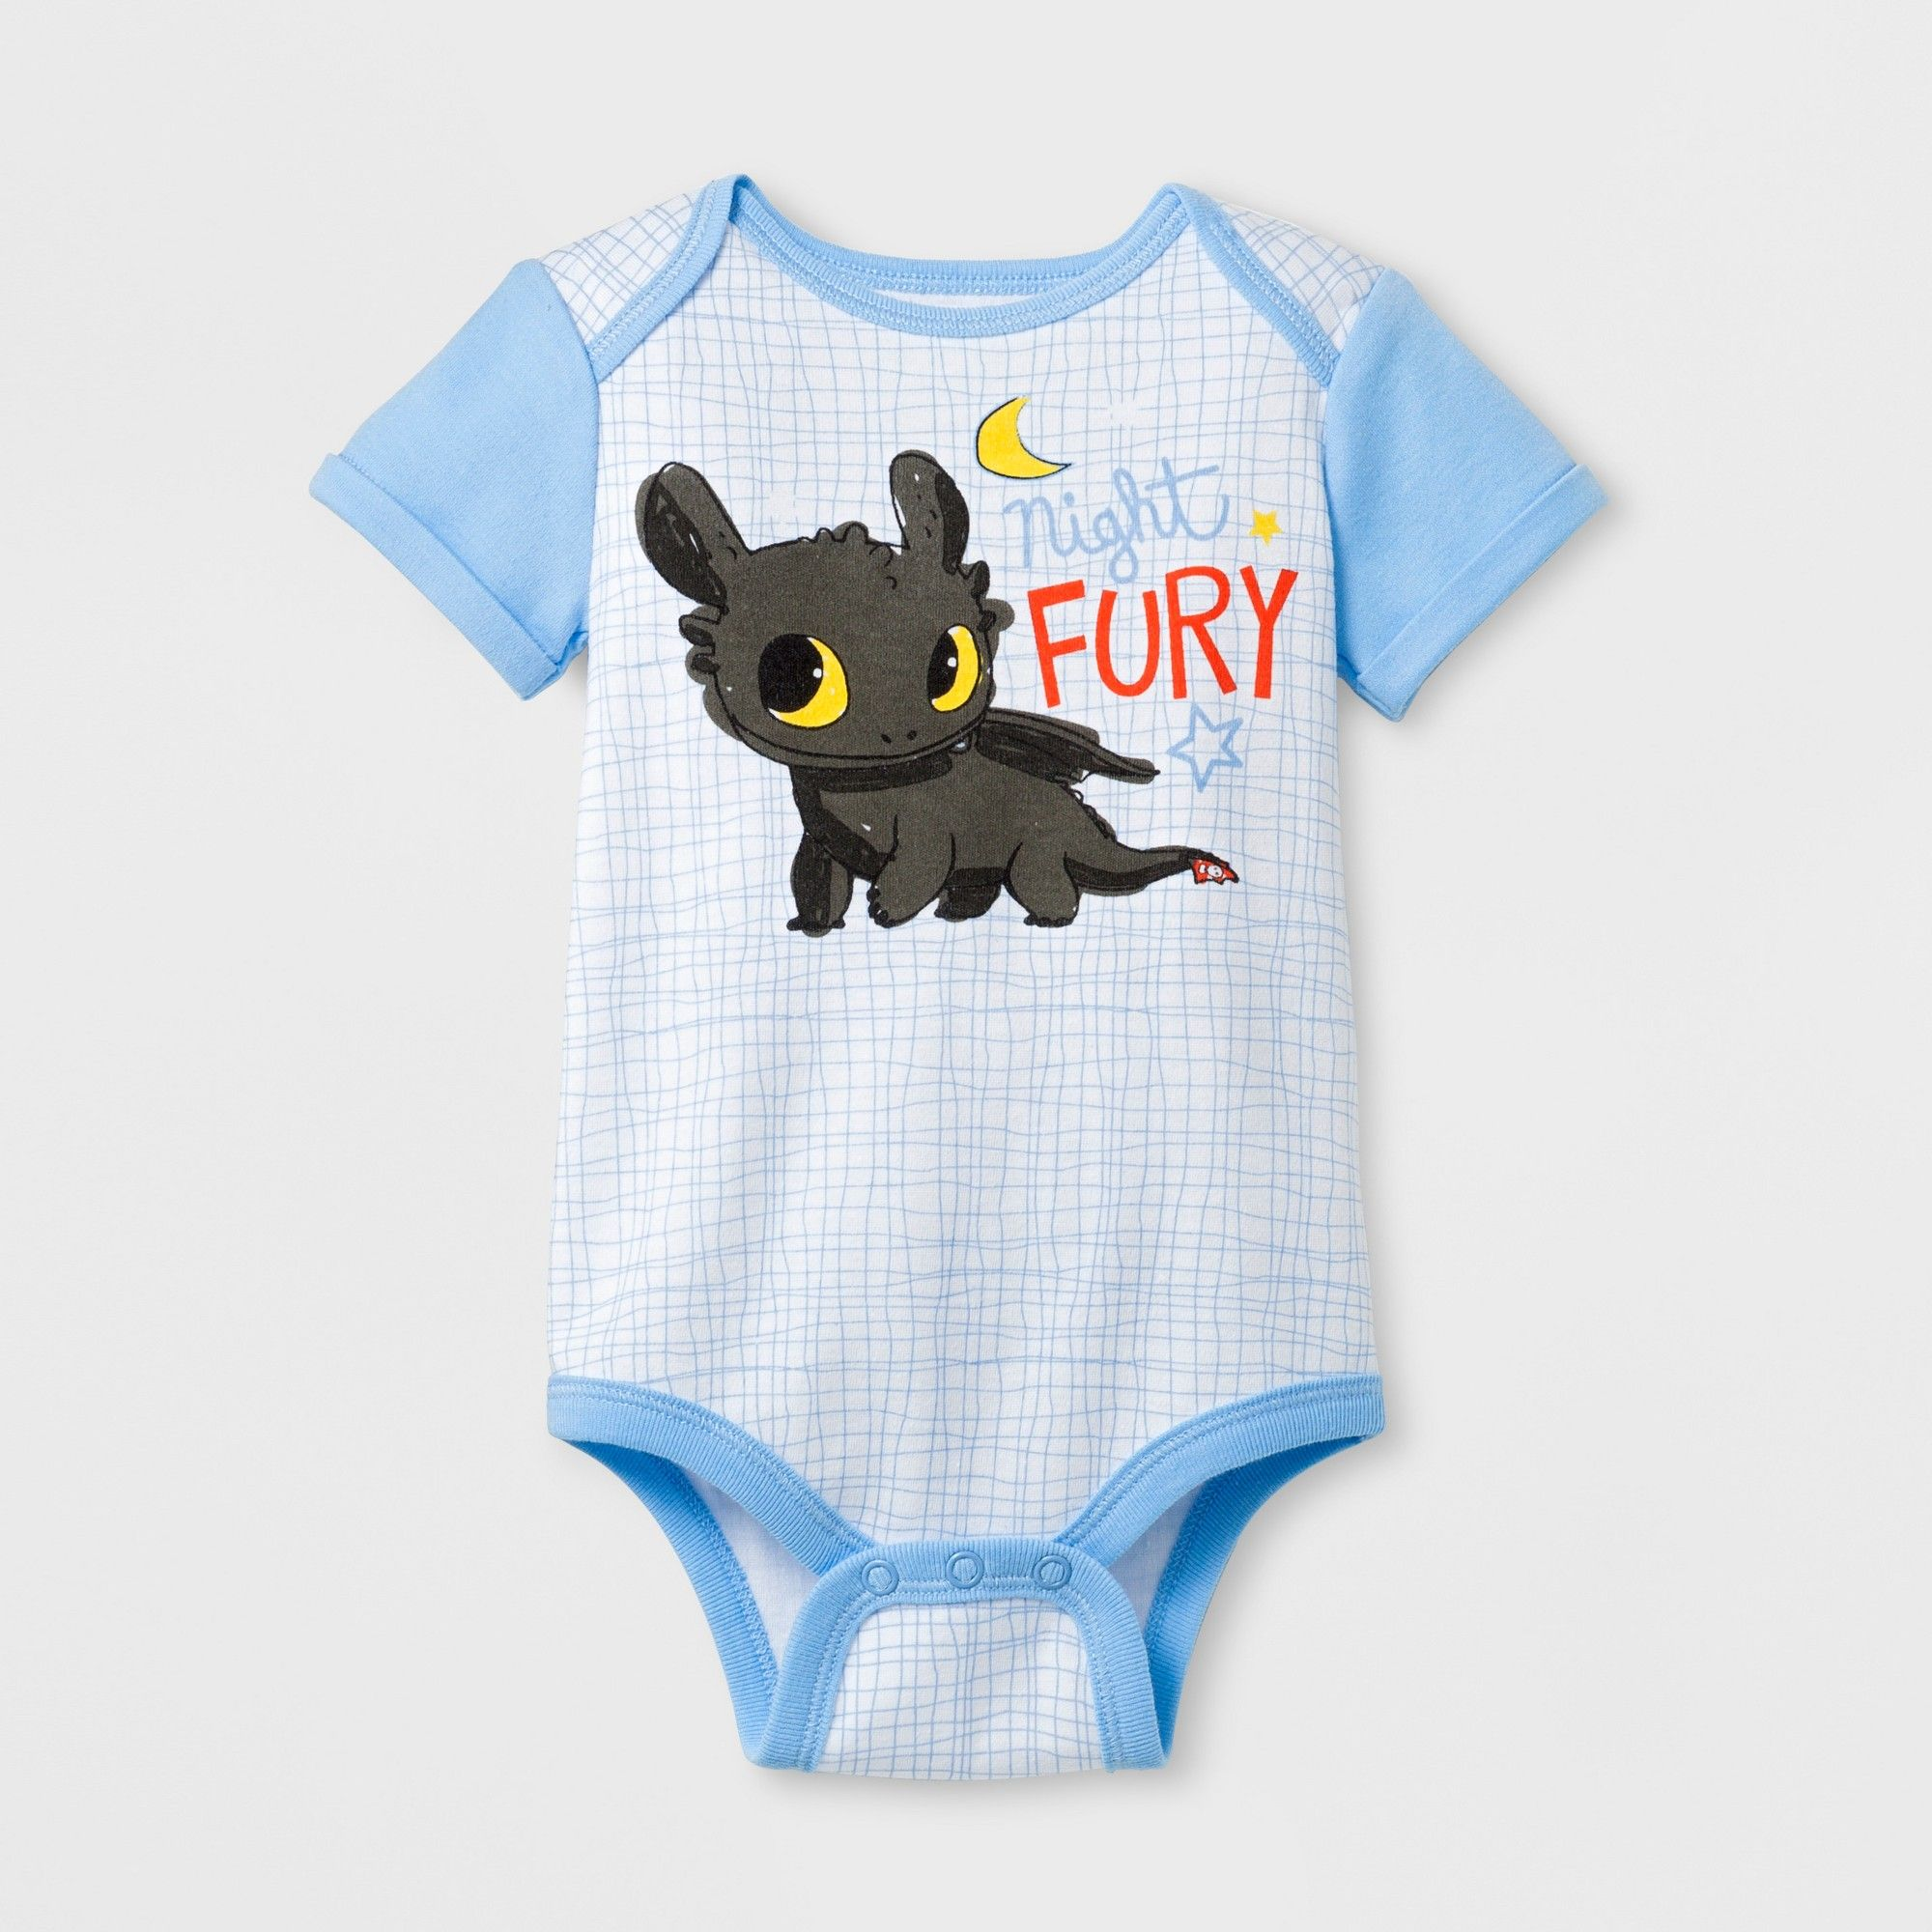 7026d72c9 DreamWorks Baby How to Train Your Dragon Night Fury Short Sleeve Bodysuit -  Light Blue 0-3M, Infant Boy's, Size: 0-3 Months